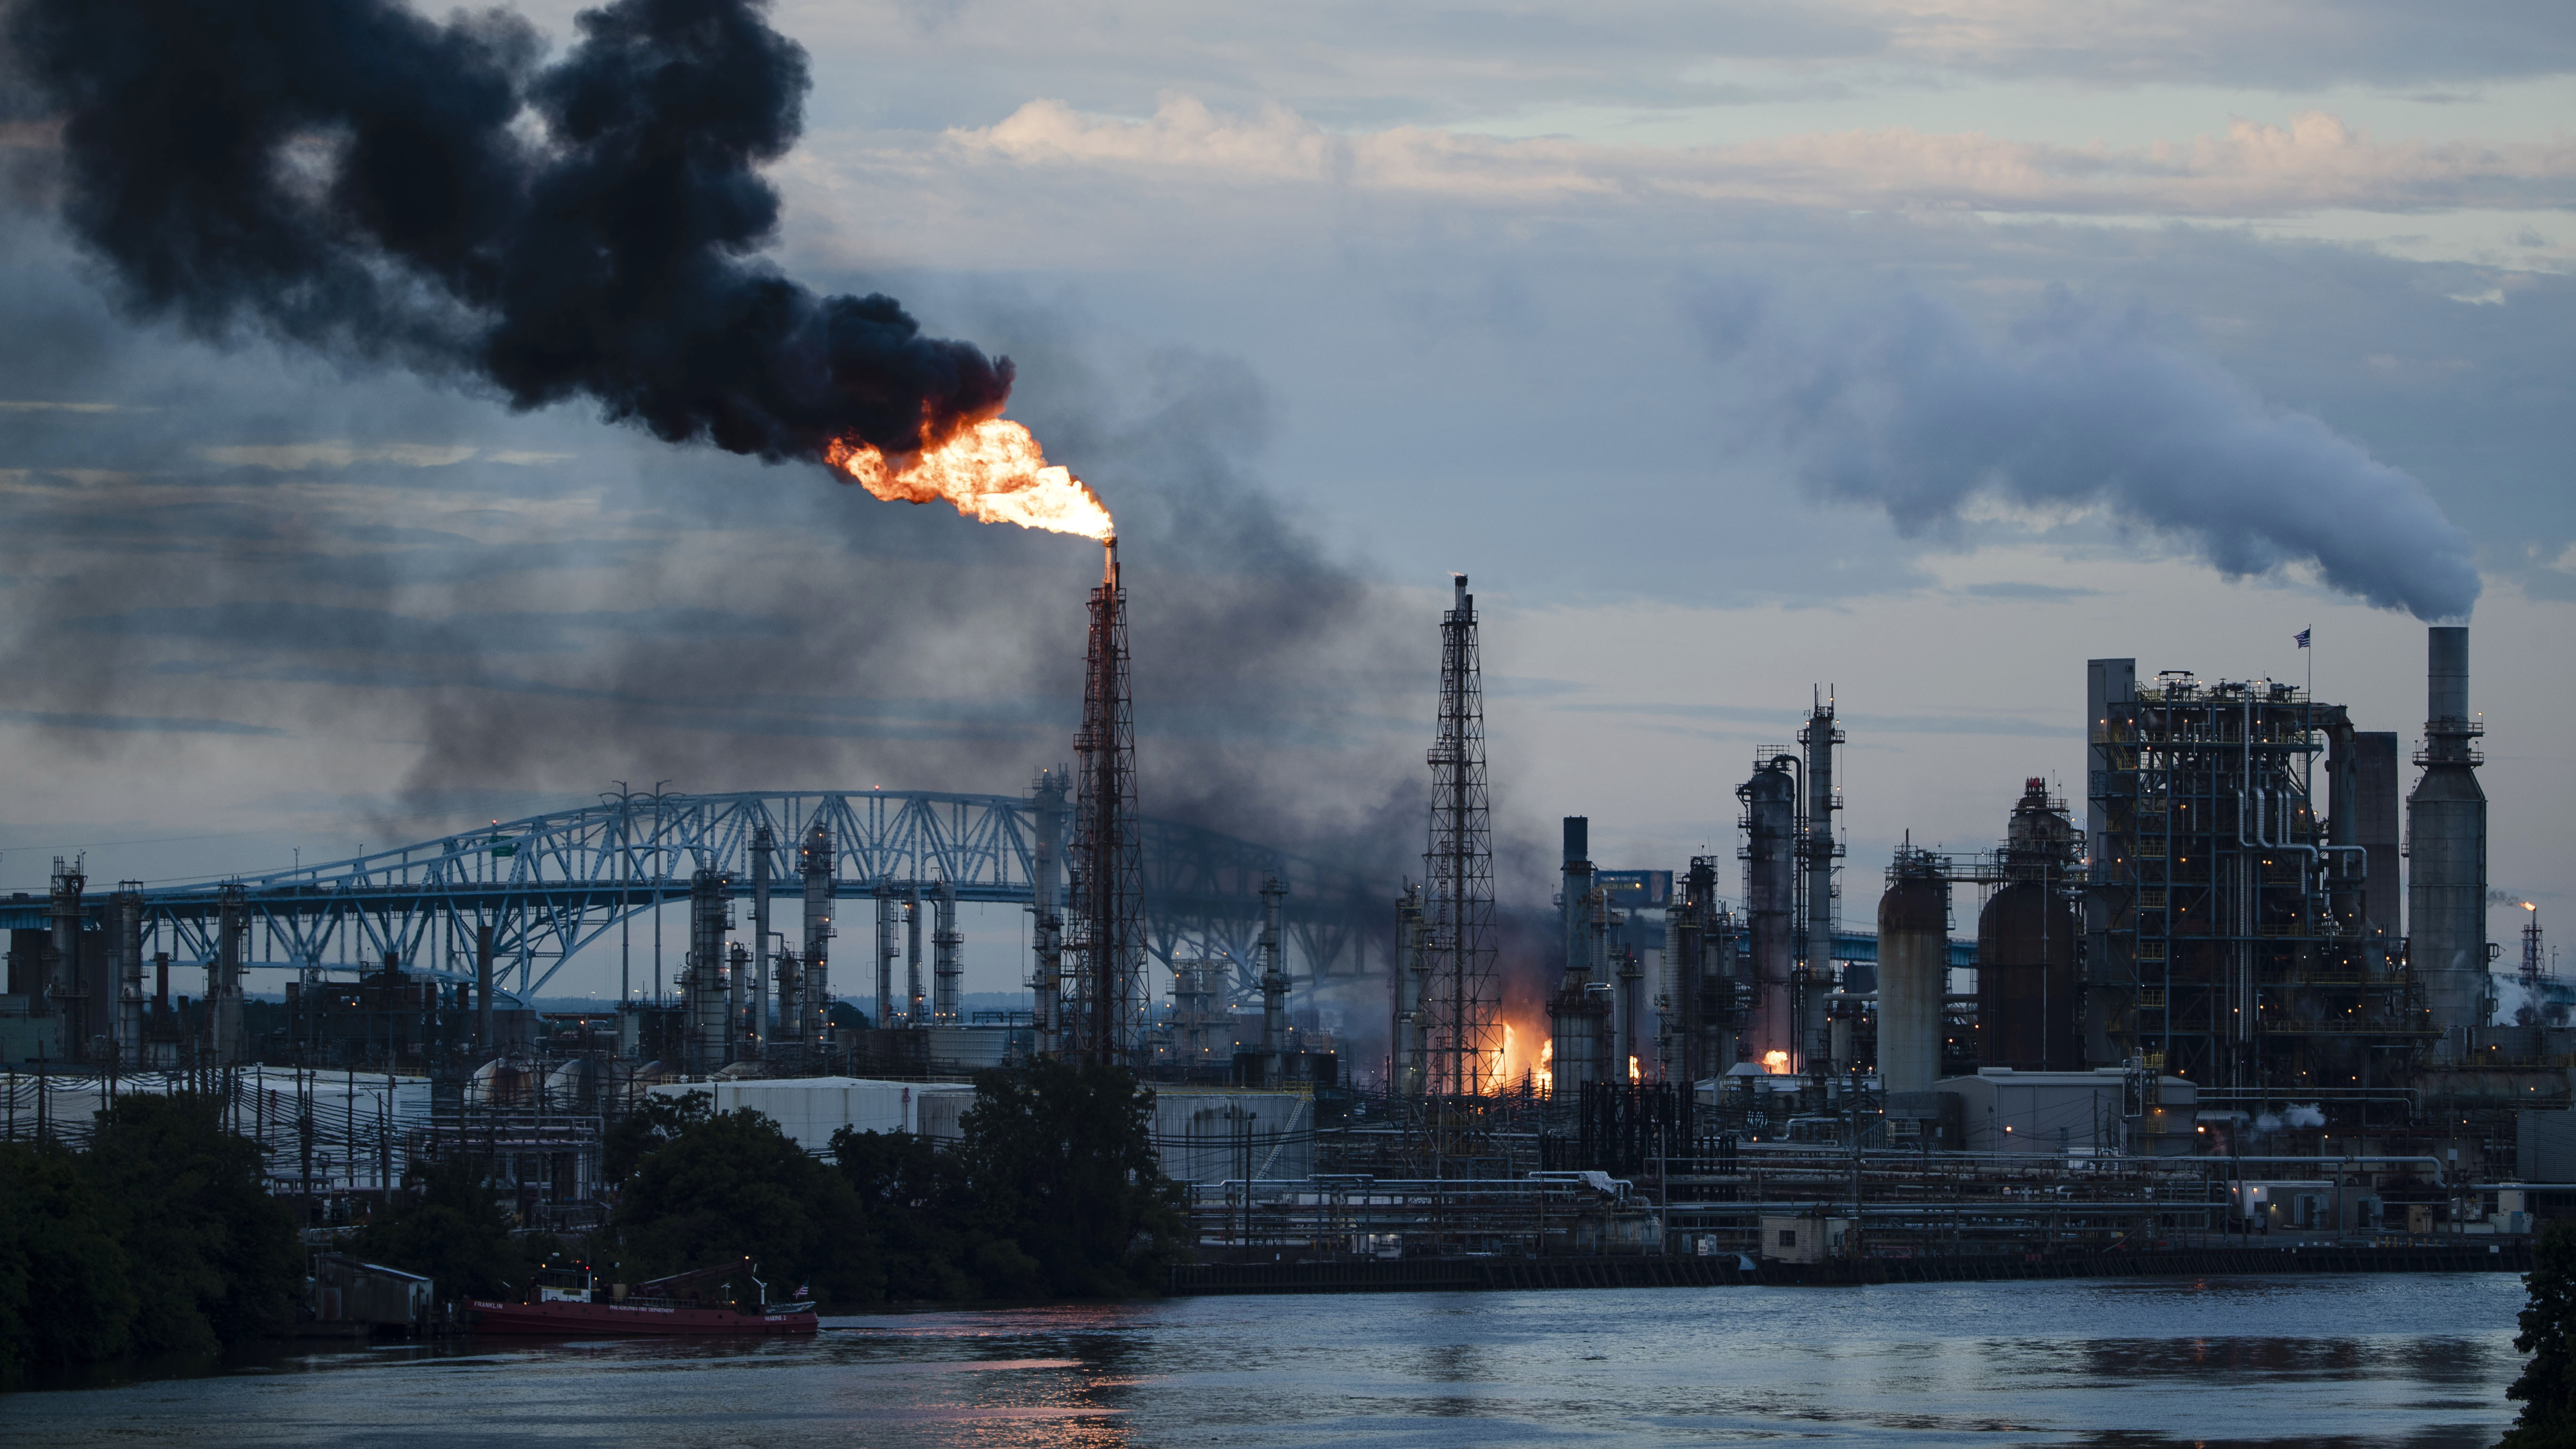 Refinery Explosions Raise New Warnings About Deadly Chemical